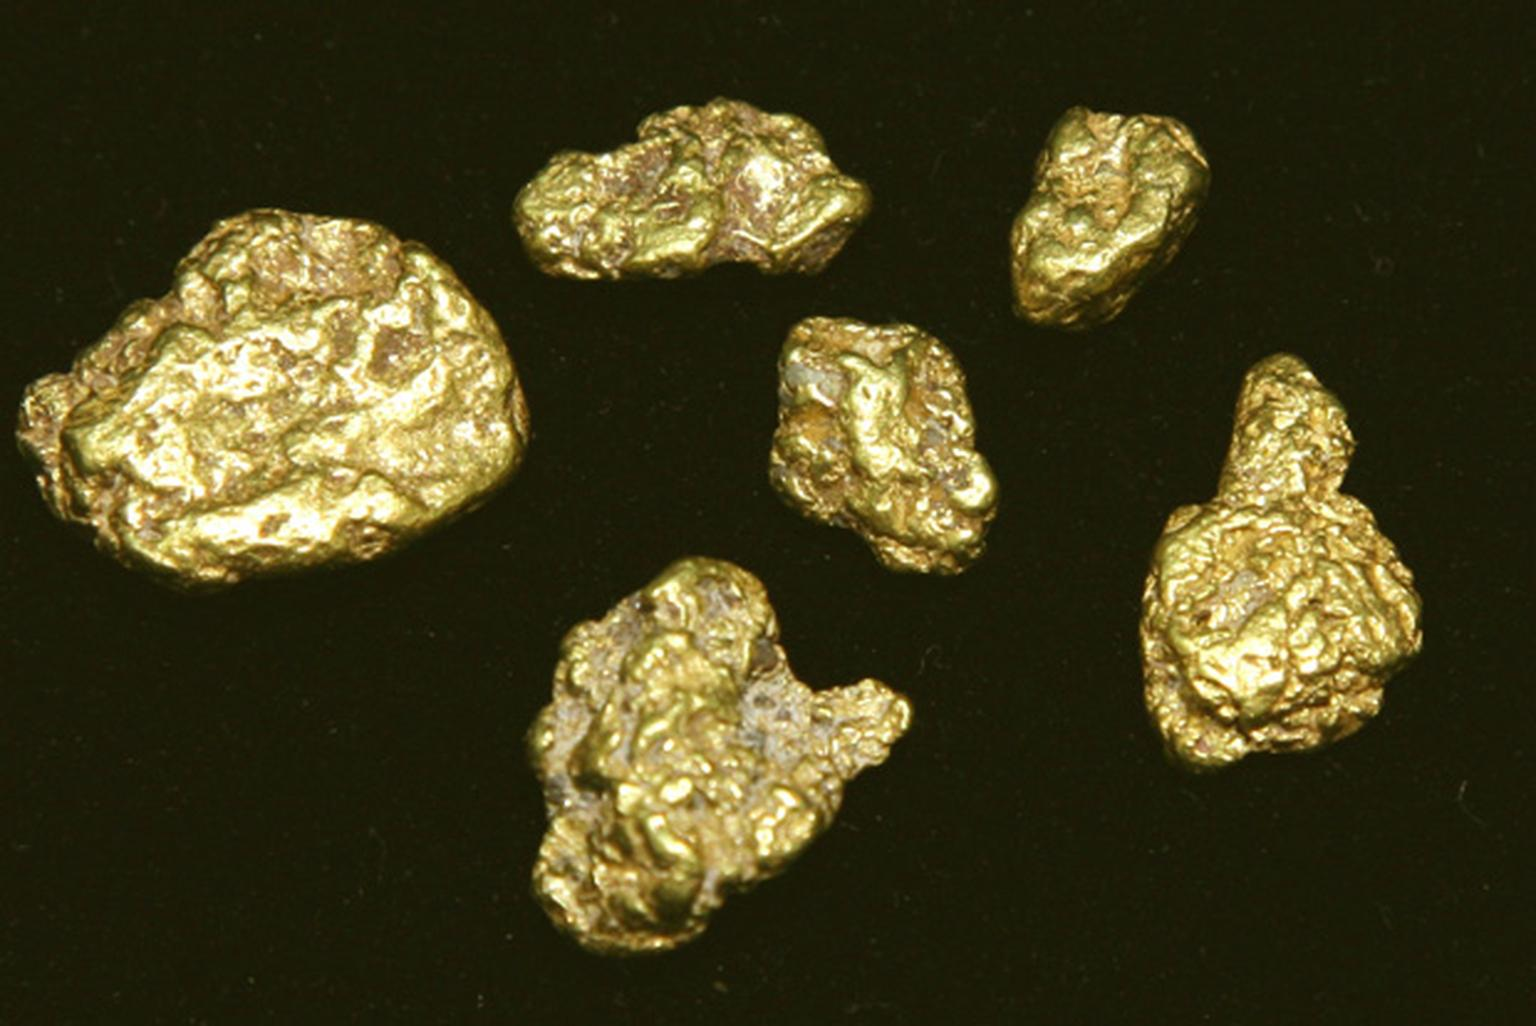 Gold nuggets from the Goldlake project in Honduras